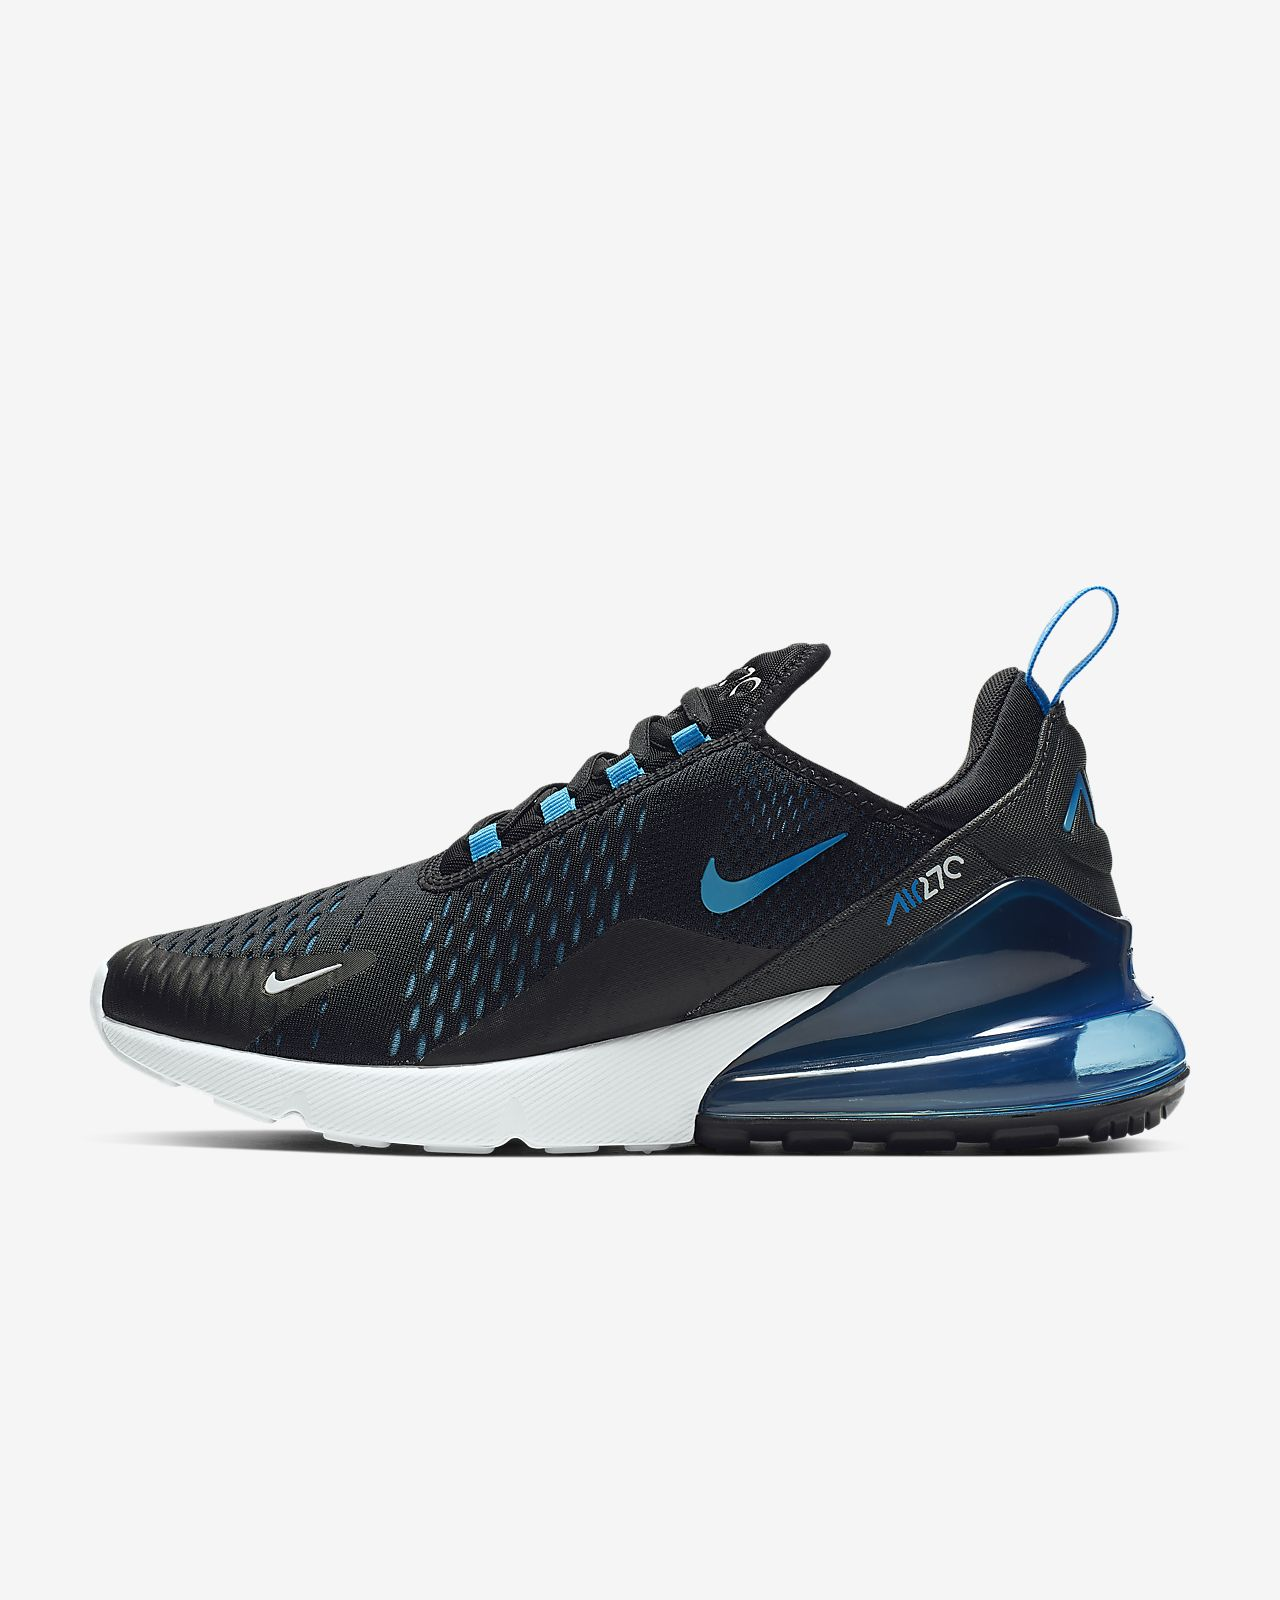 meet 9cf11 ffb20 Men s Shoe. Nike Air Max 270